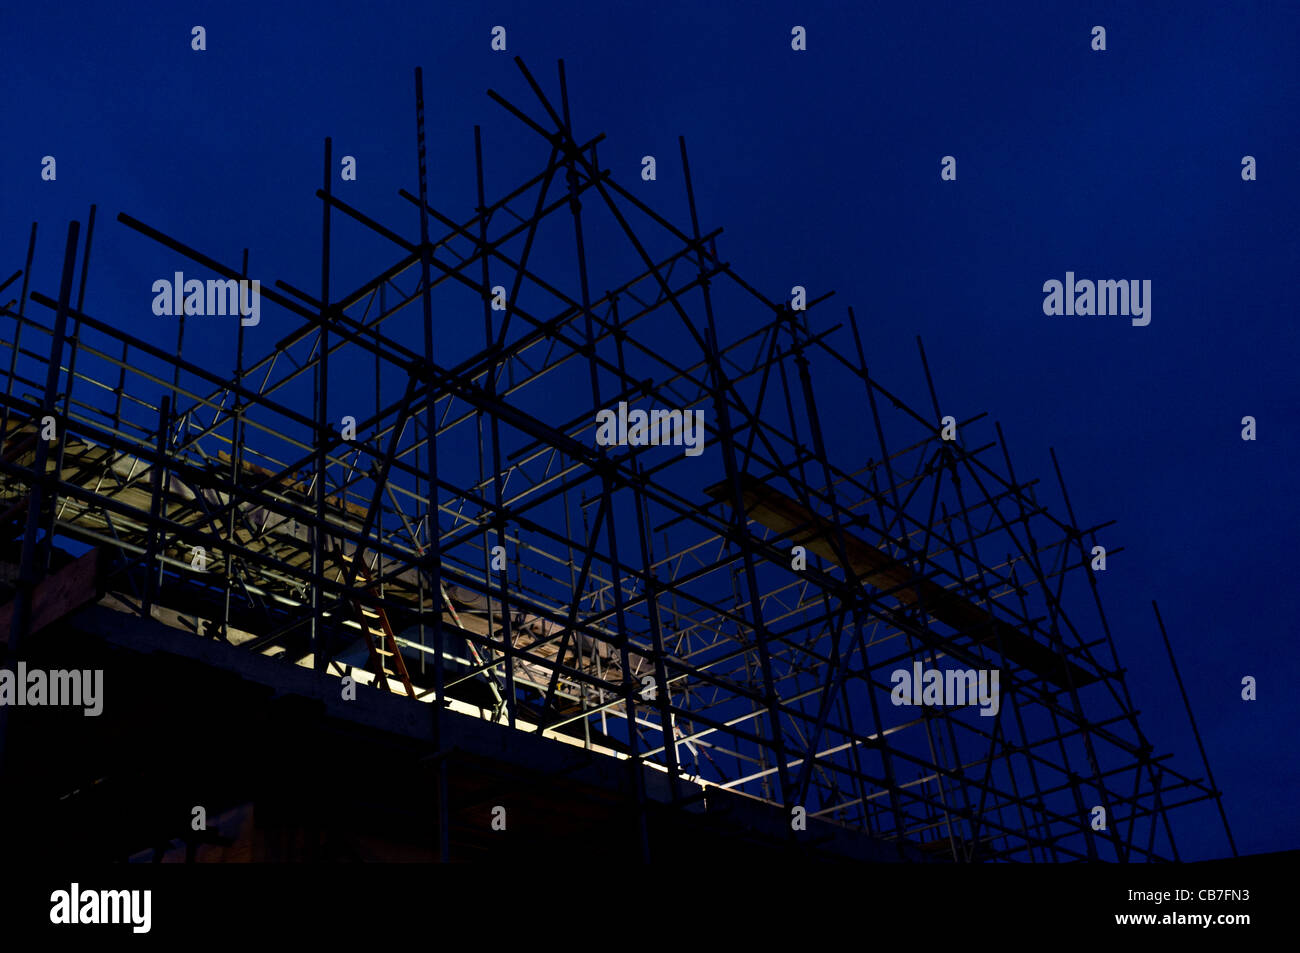 Scaffolding on a period building at night - Stock Image